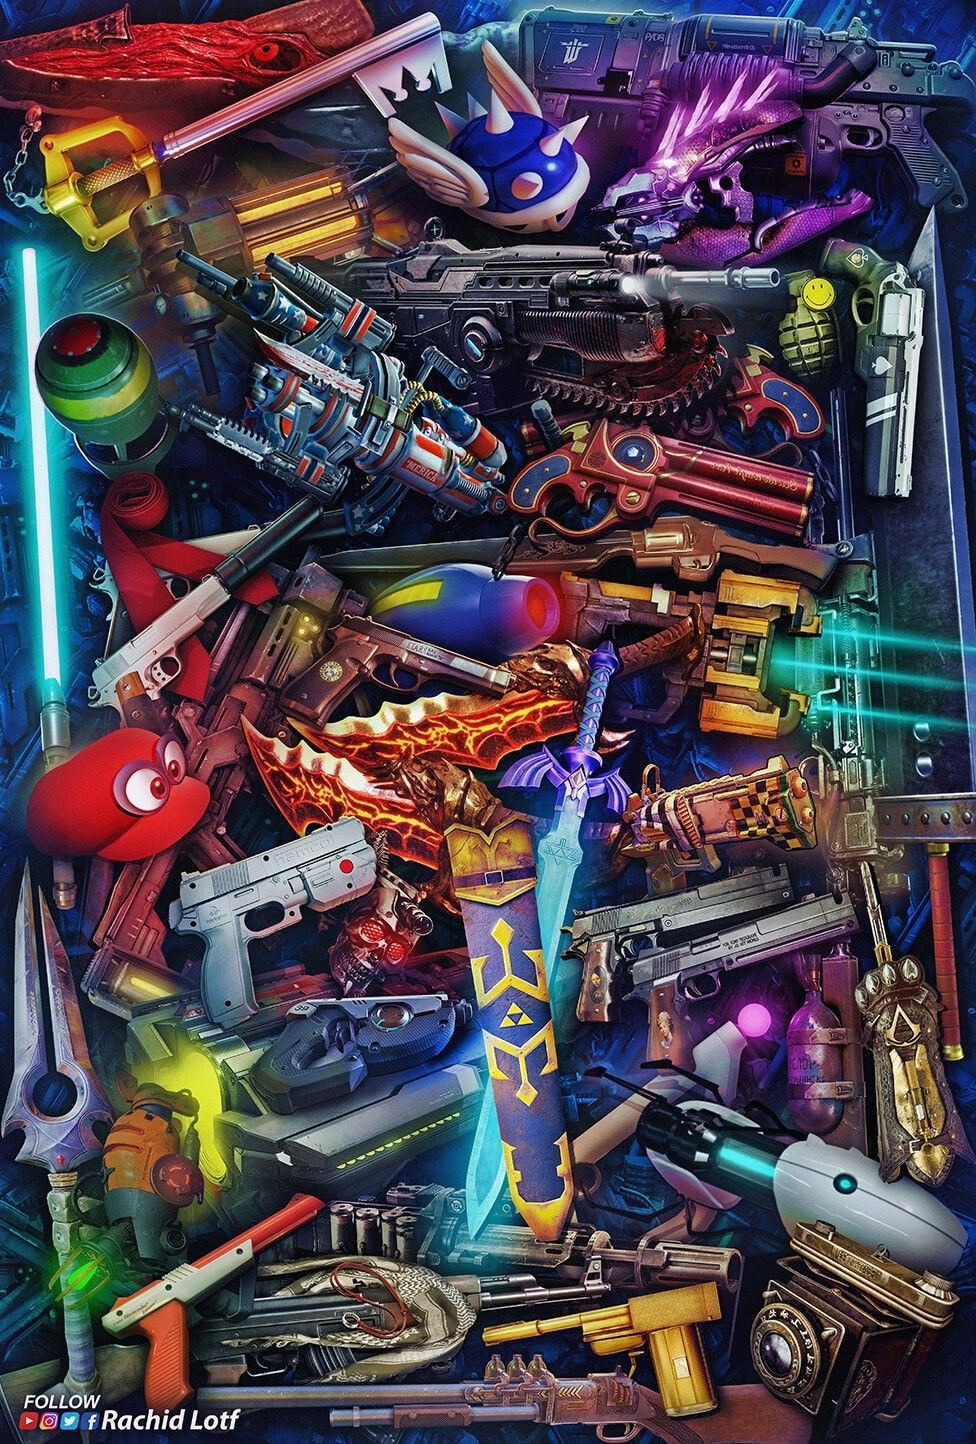 Weapon Crate In 2020 Game Wallpaper Iphone Retro Gaming Art Best Gaming Wallpapers